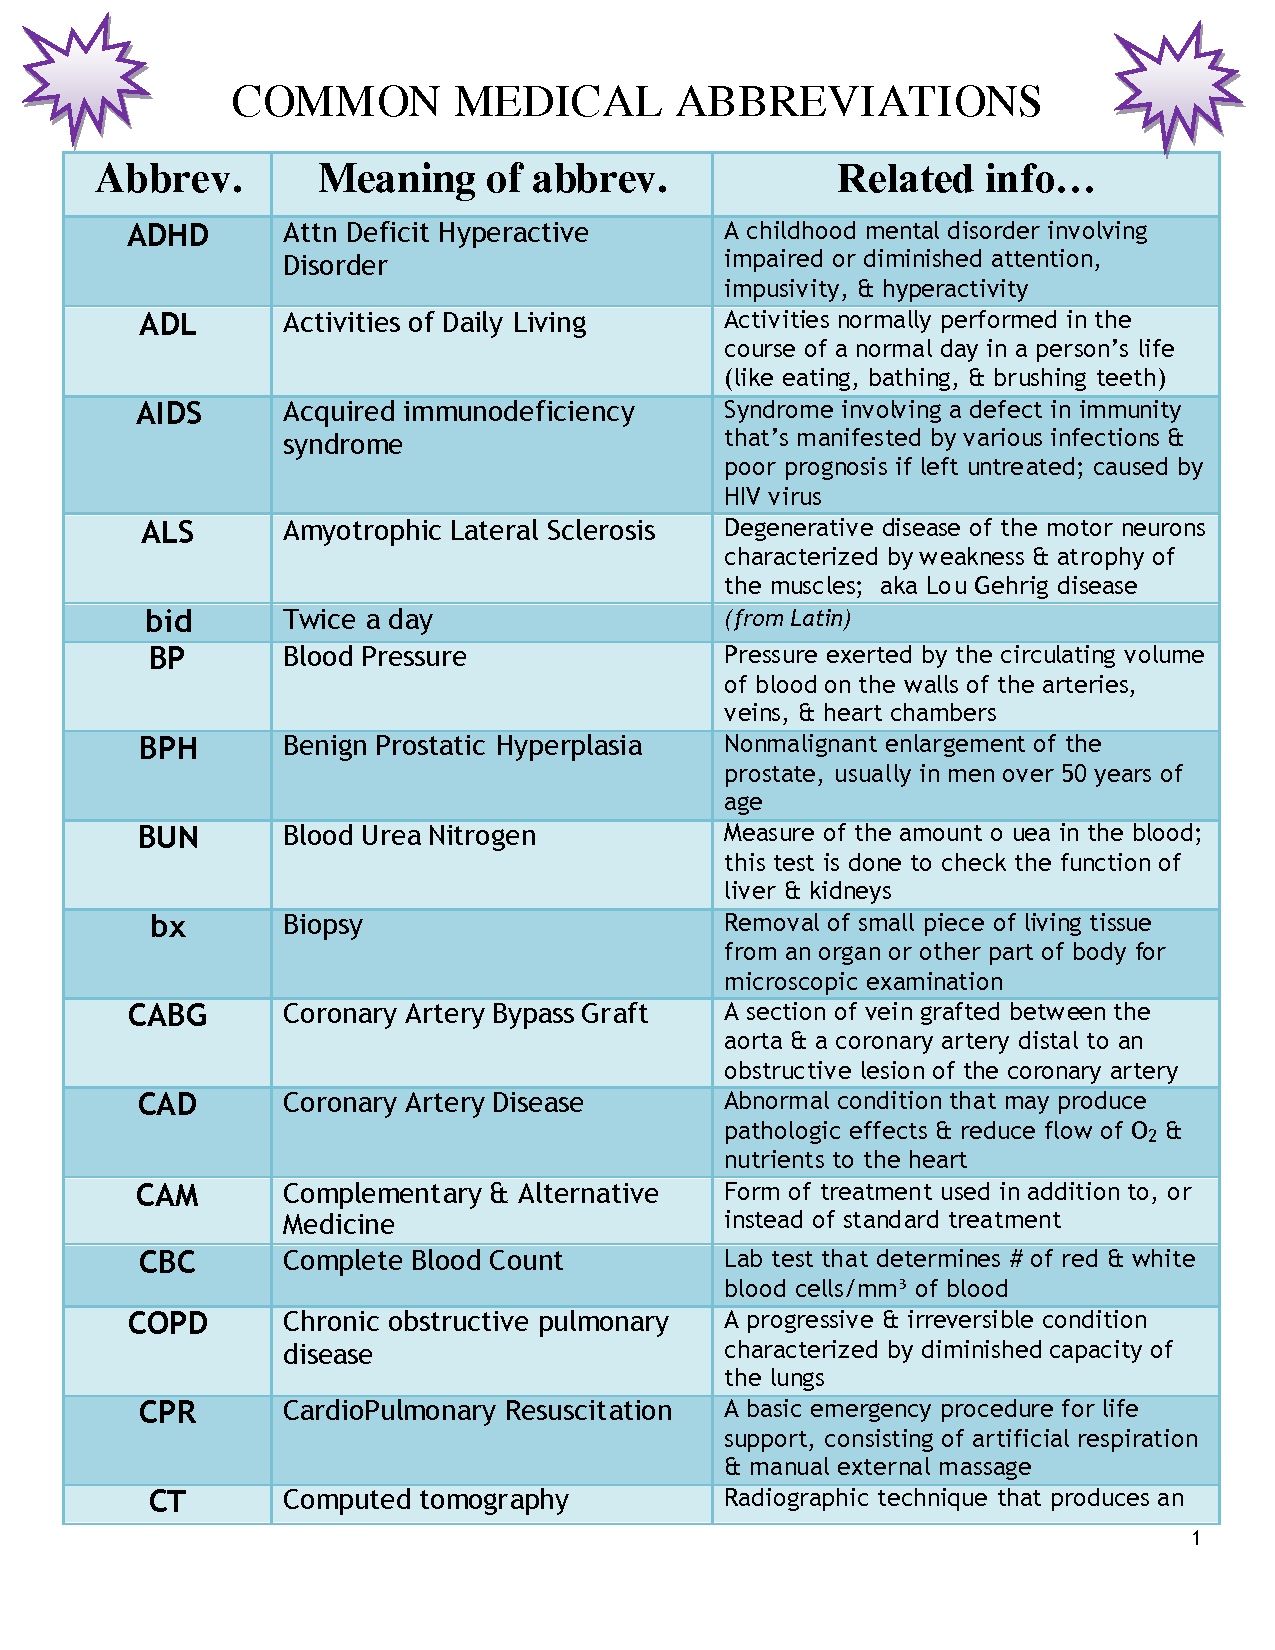 Medical abbreviation once daily - Medical Abbreviations And Symbols Commonly Used Medical Abbreviations